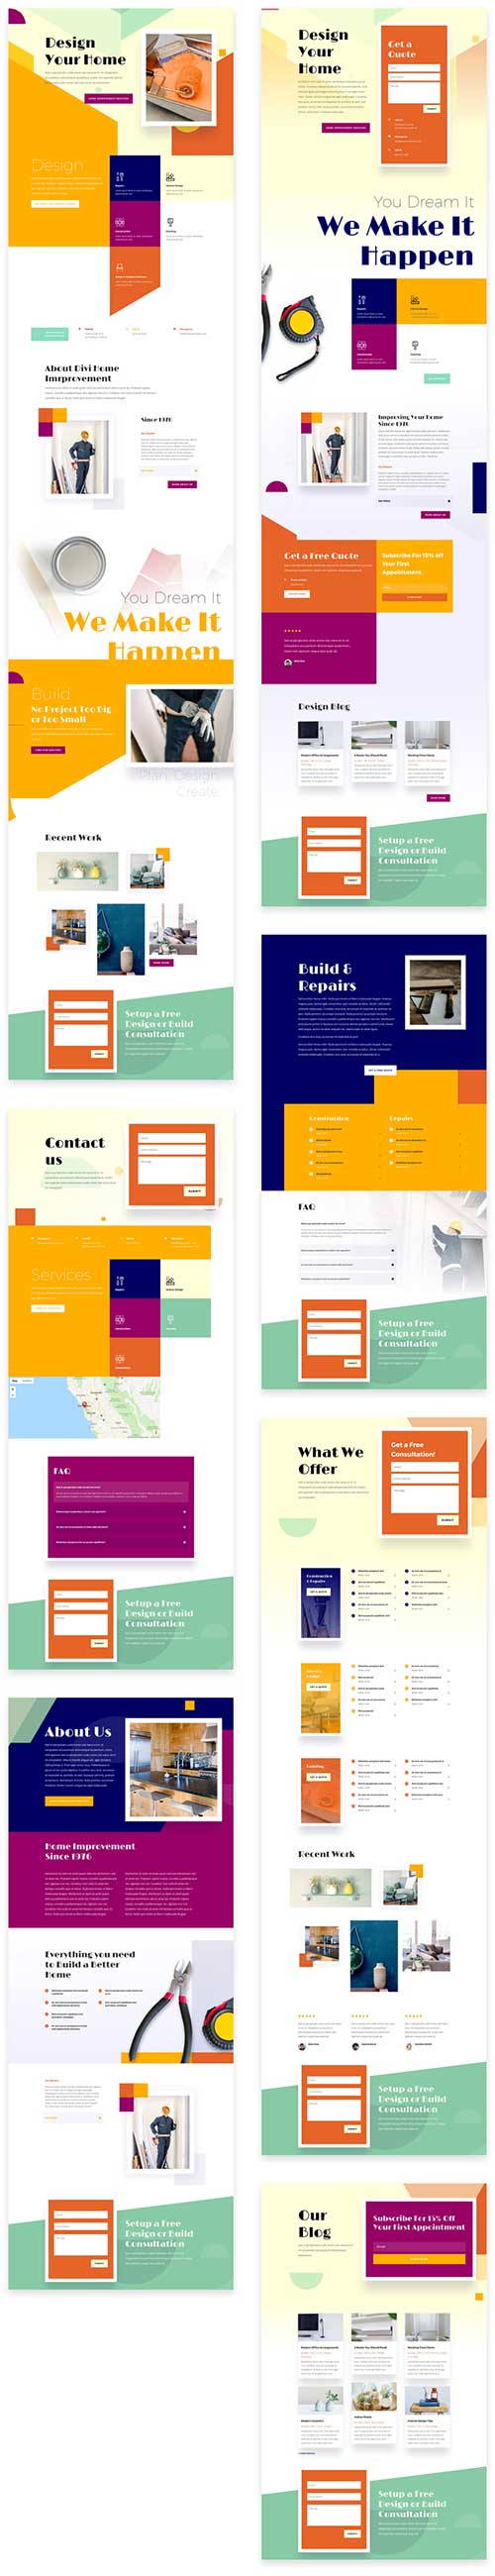 divi template for Home Improvement